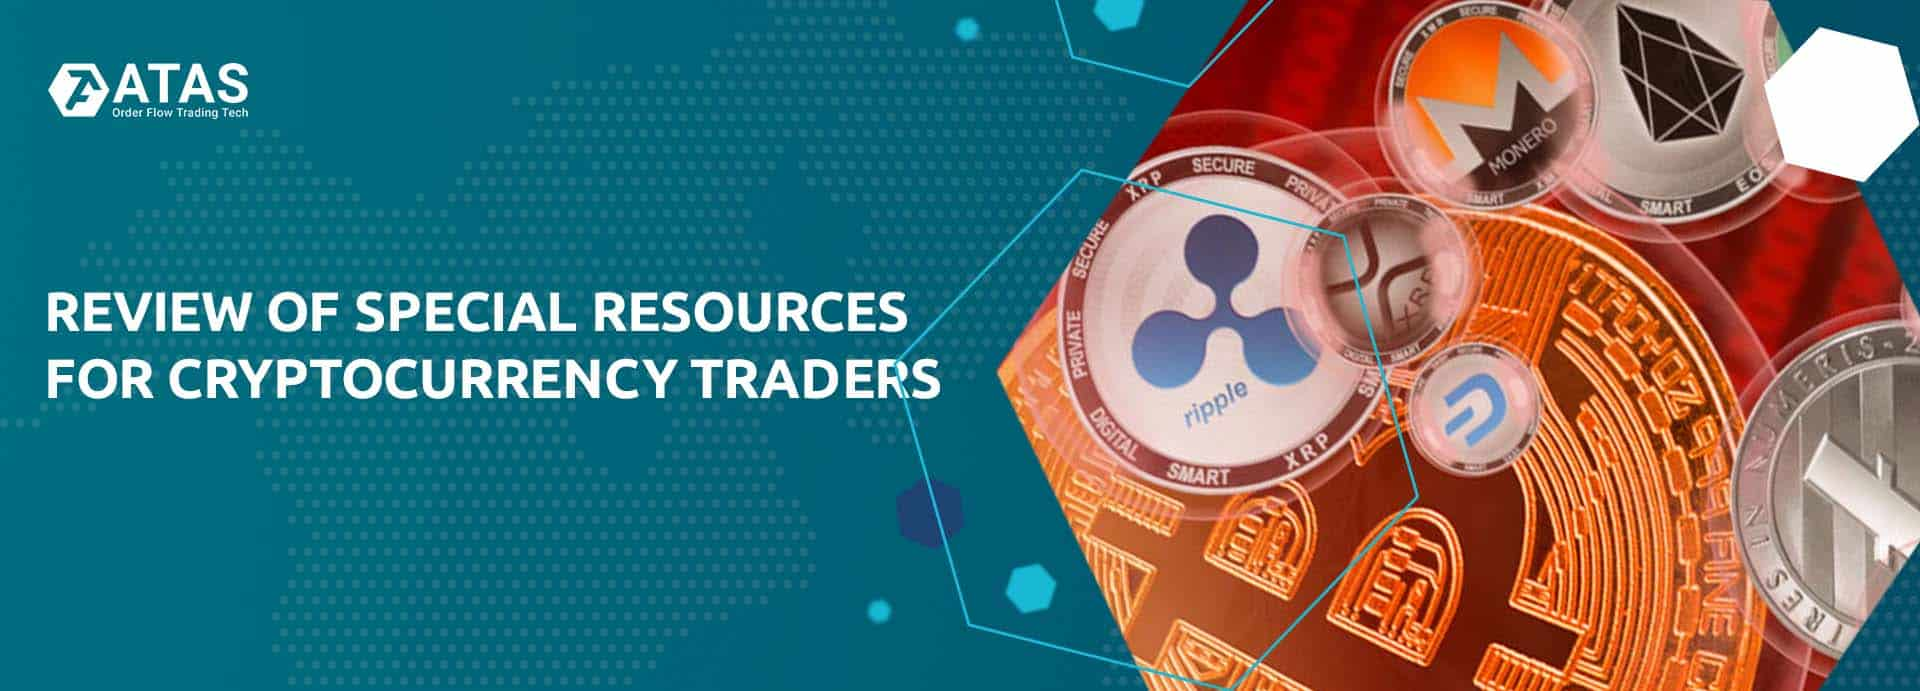 Review of special resources for cryptocurrency traders